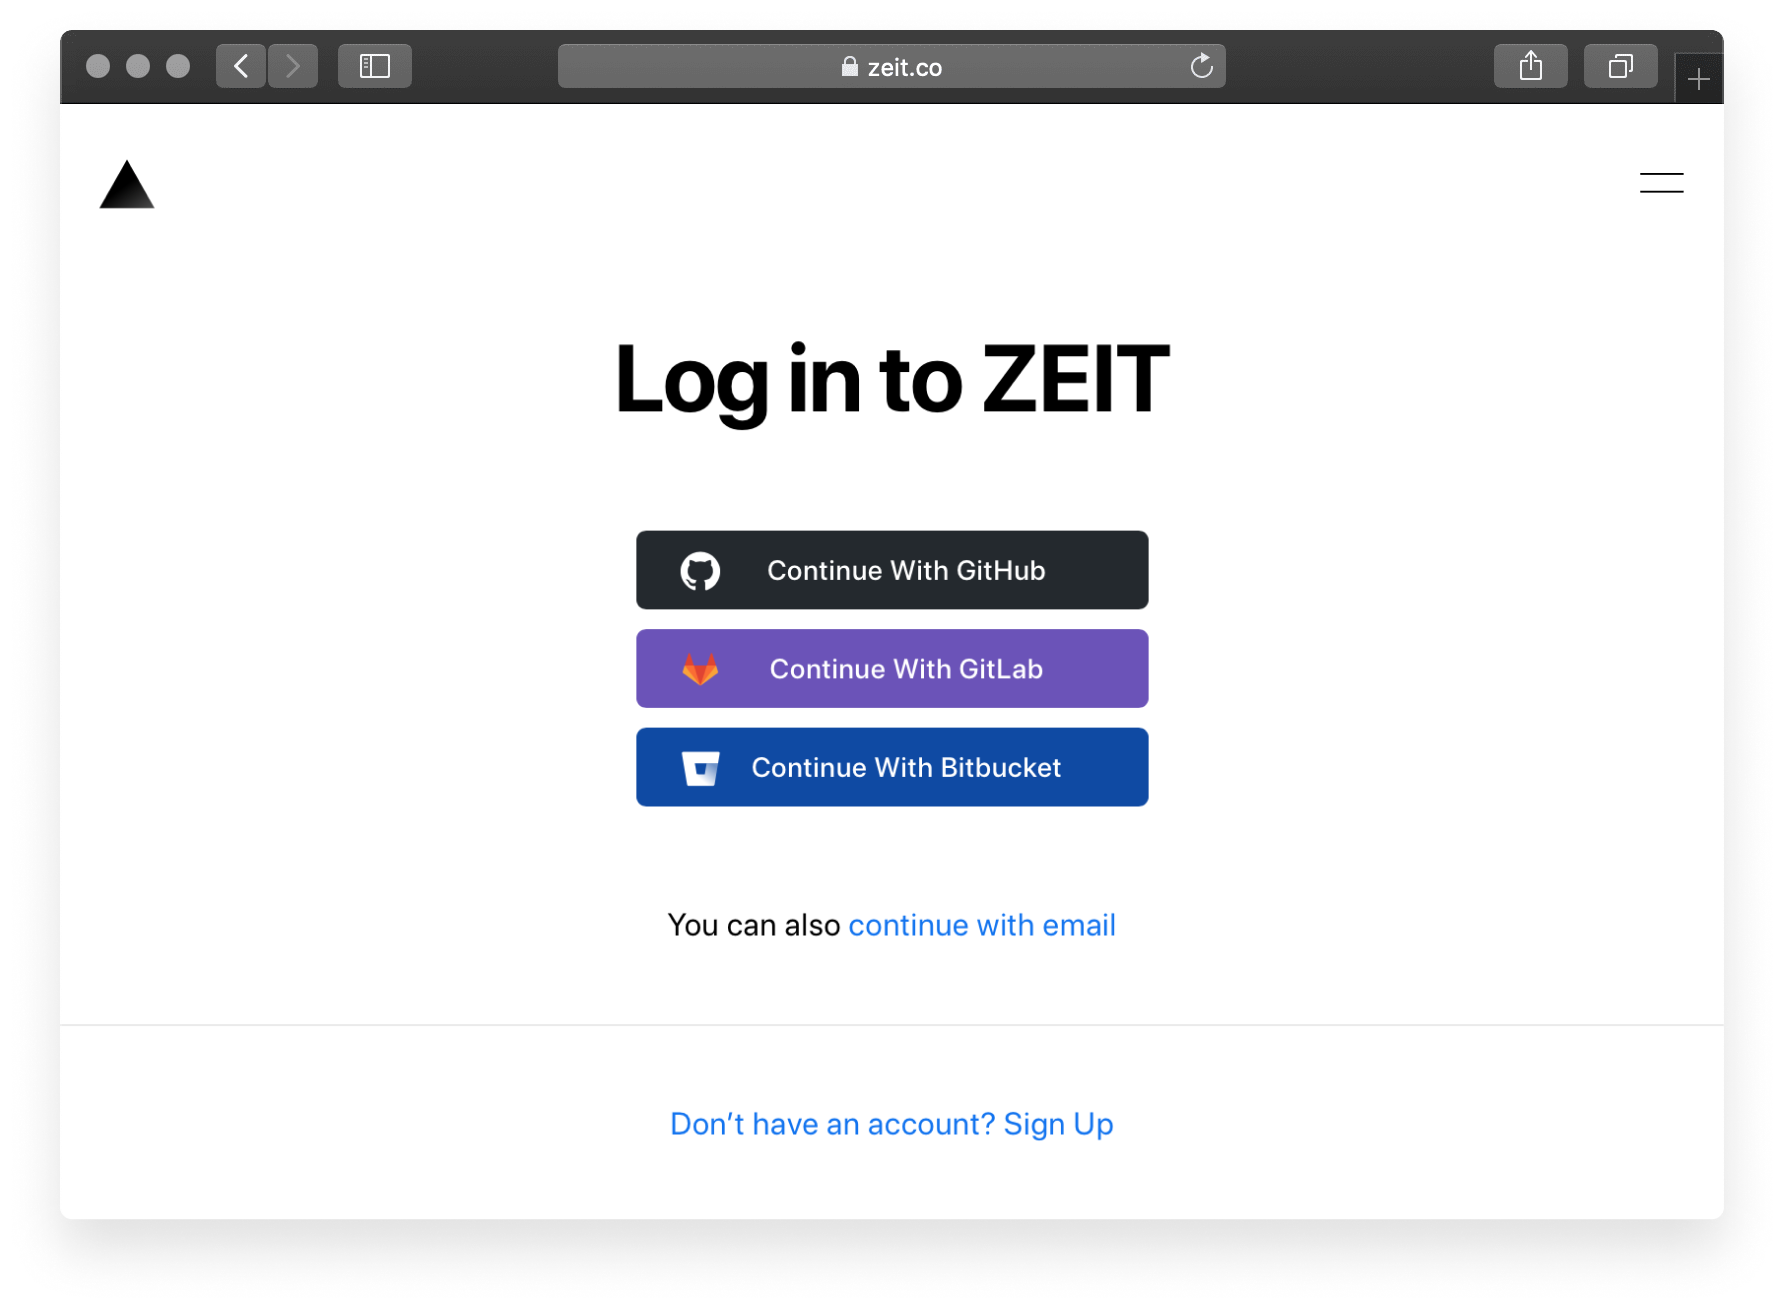 Once you connect Bitbucket, you also activate the ability to Log In to Vercel with Bitbucket.